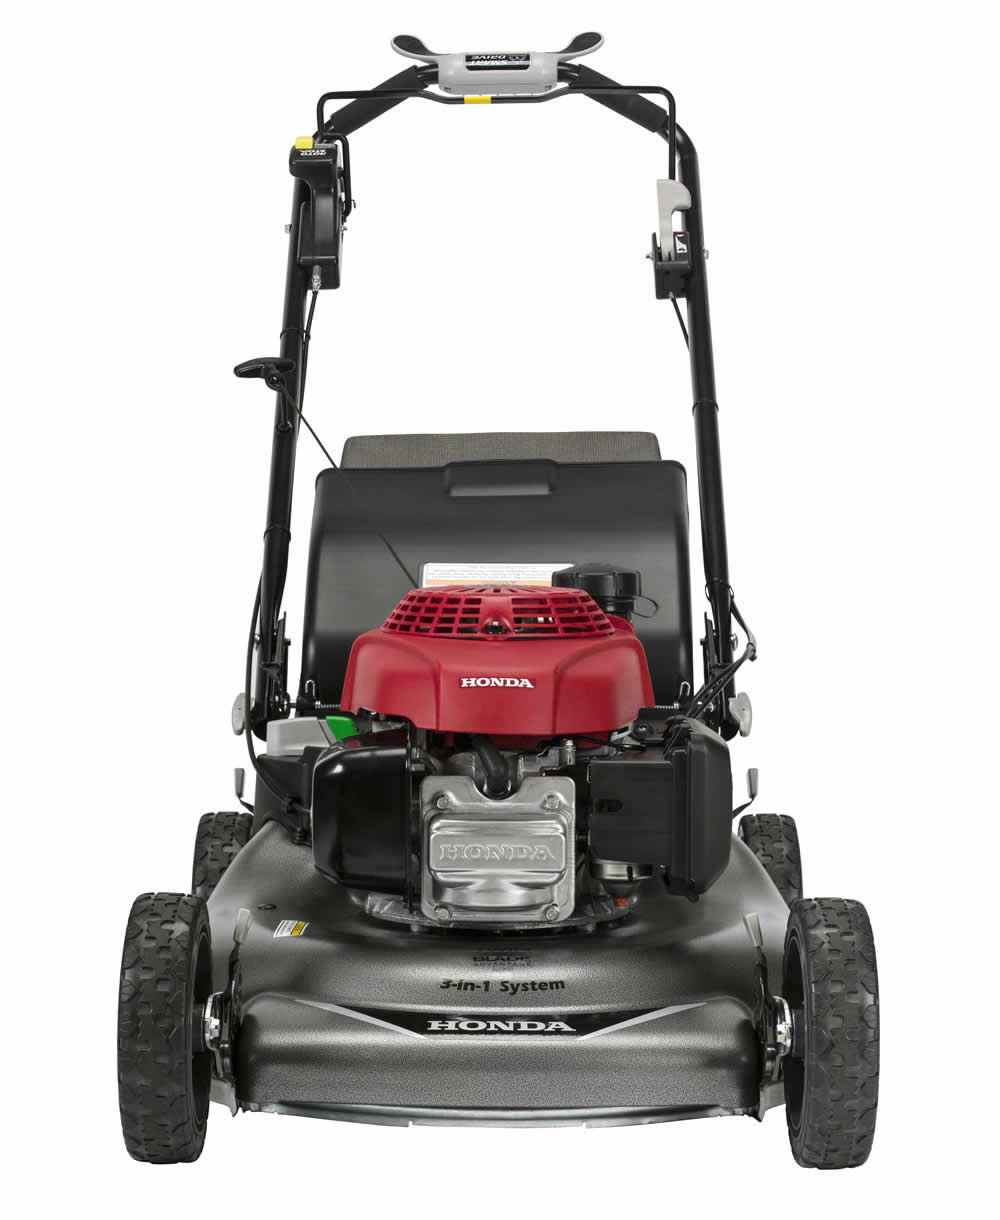 Honda HRR216VYA Walk Behind Mower